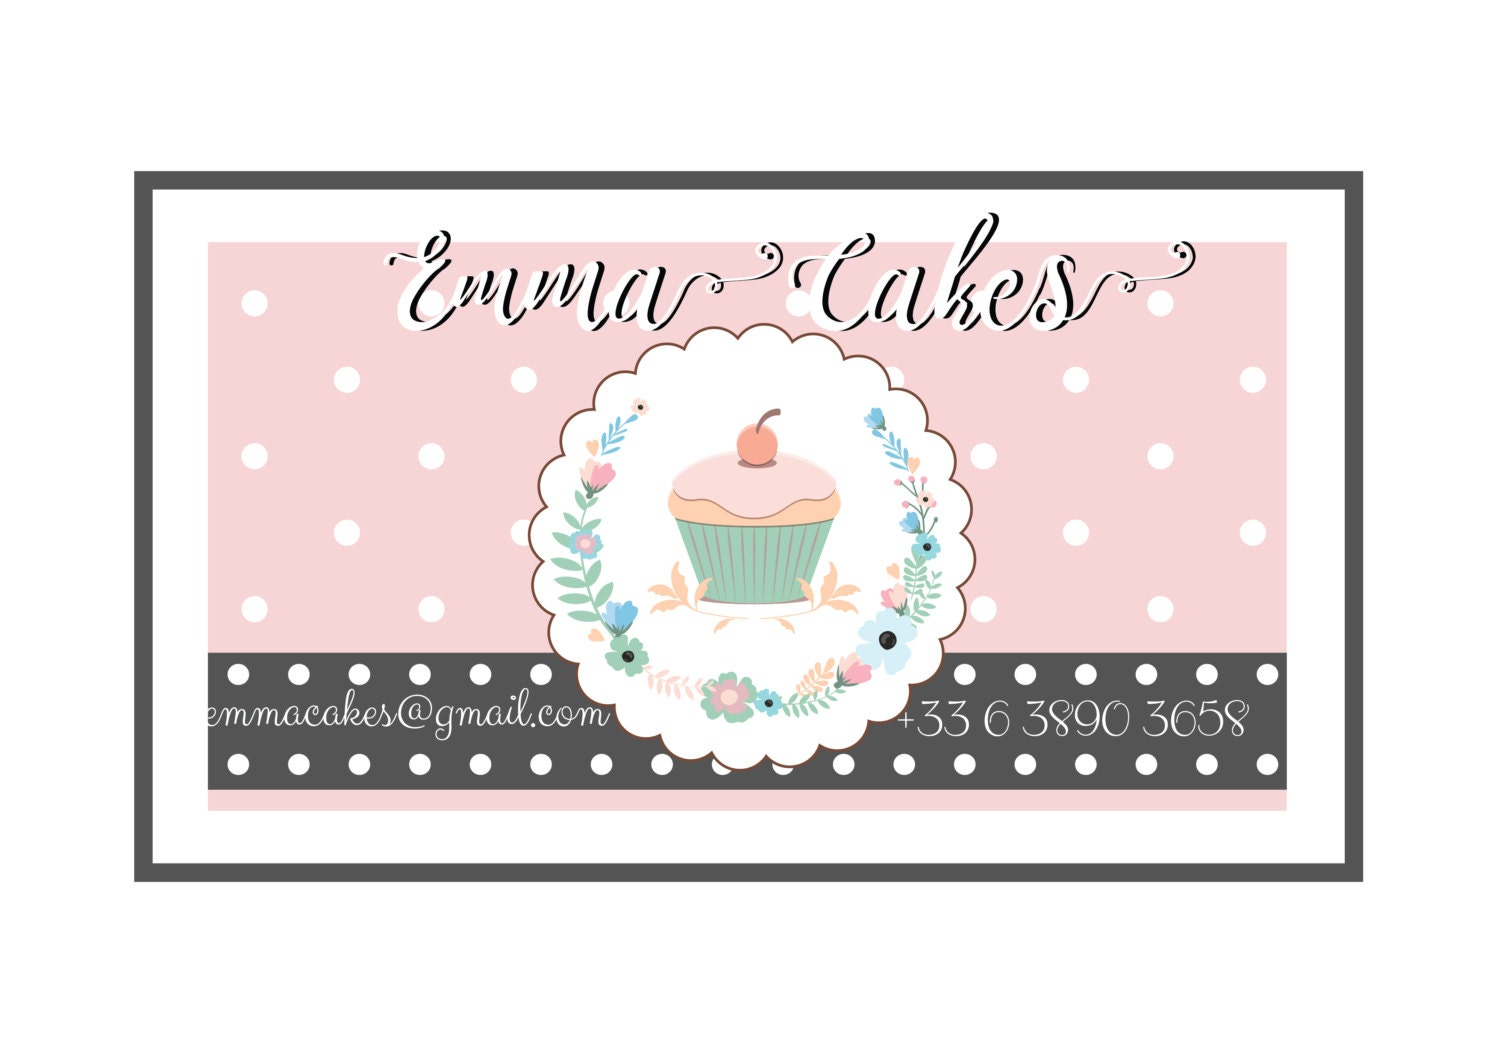 Cupcake Business Cards | Unlimitedgamers.co